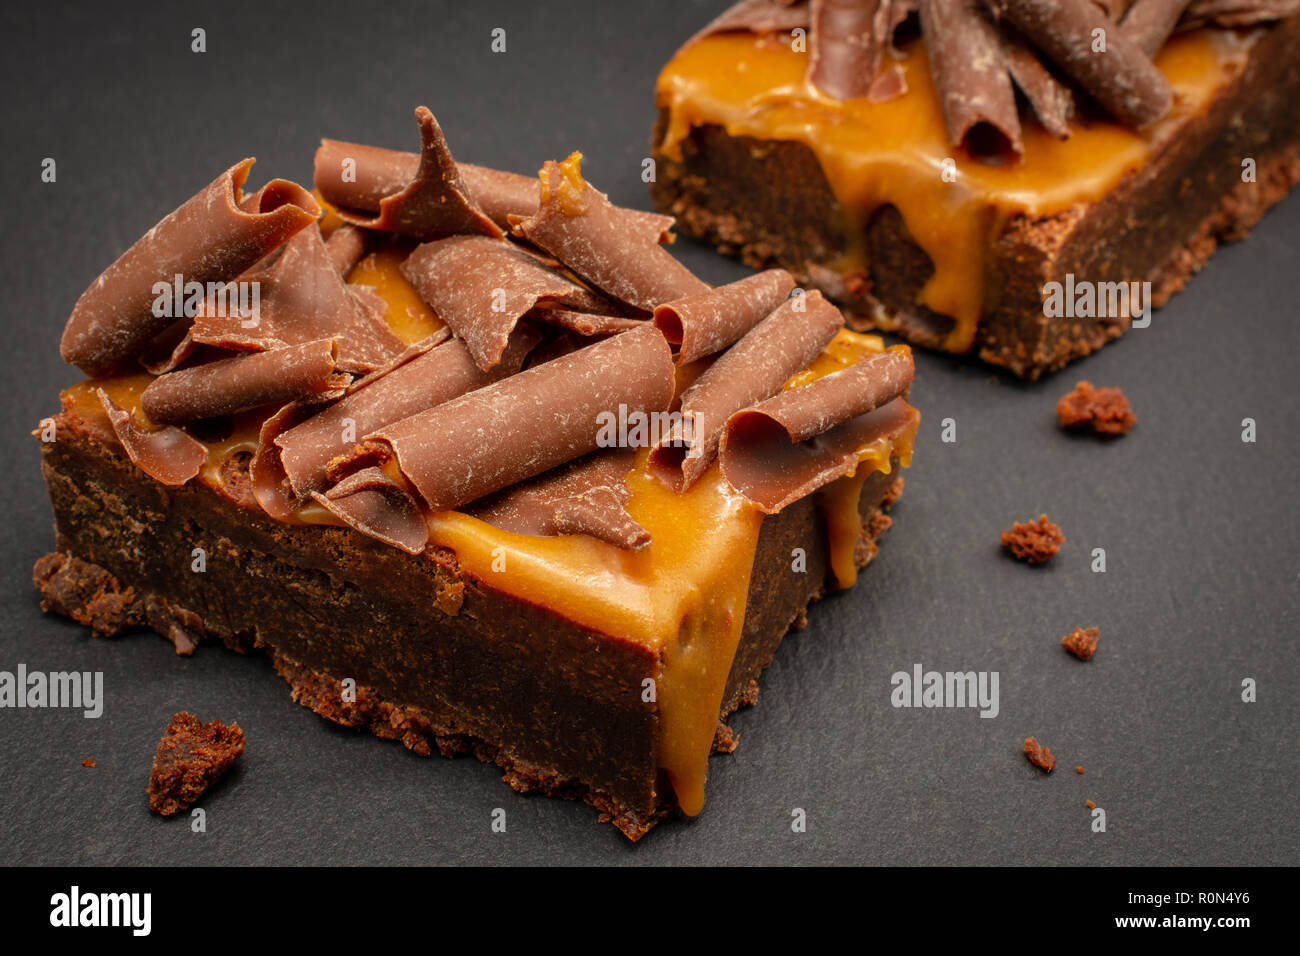 Chocolate Brownies with salted caramel sauce and chocolate flakes Stock Photo